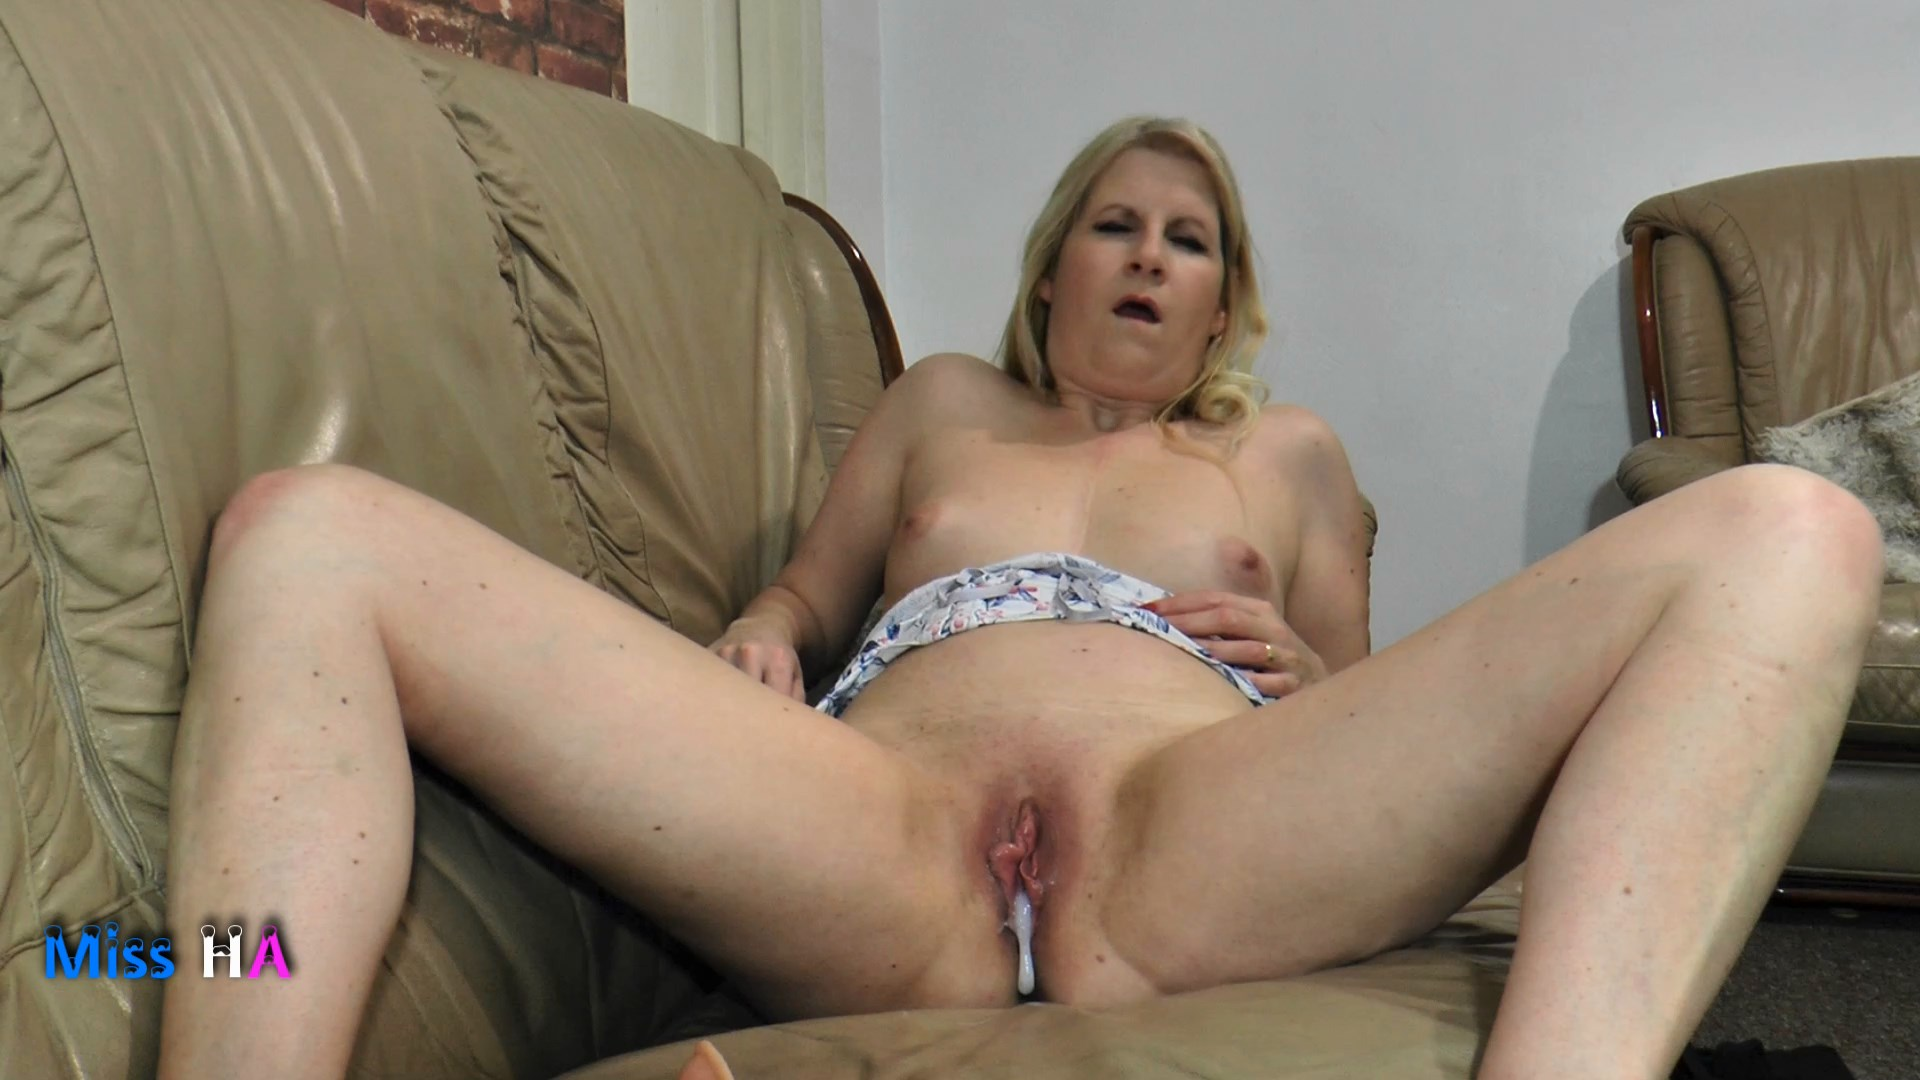 Miss Horny Ass - Mom Wants to Thank You